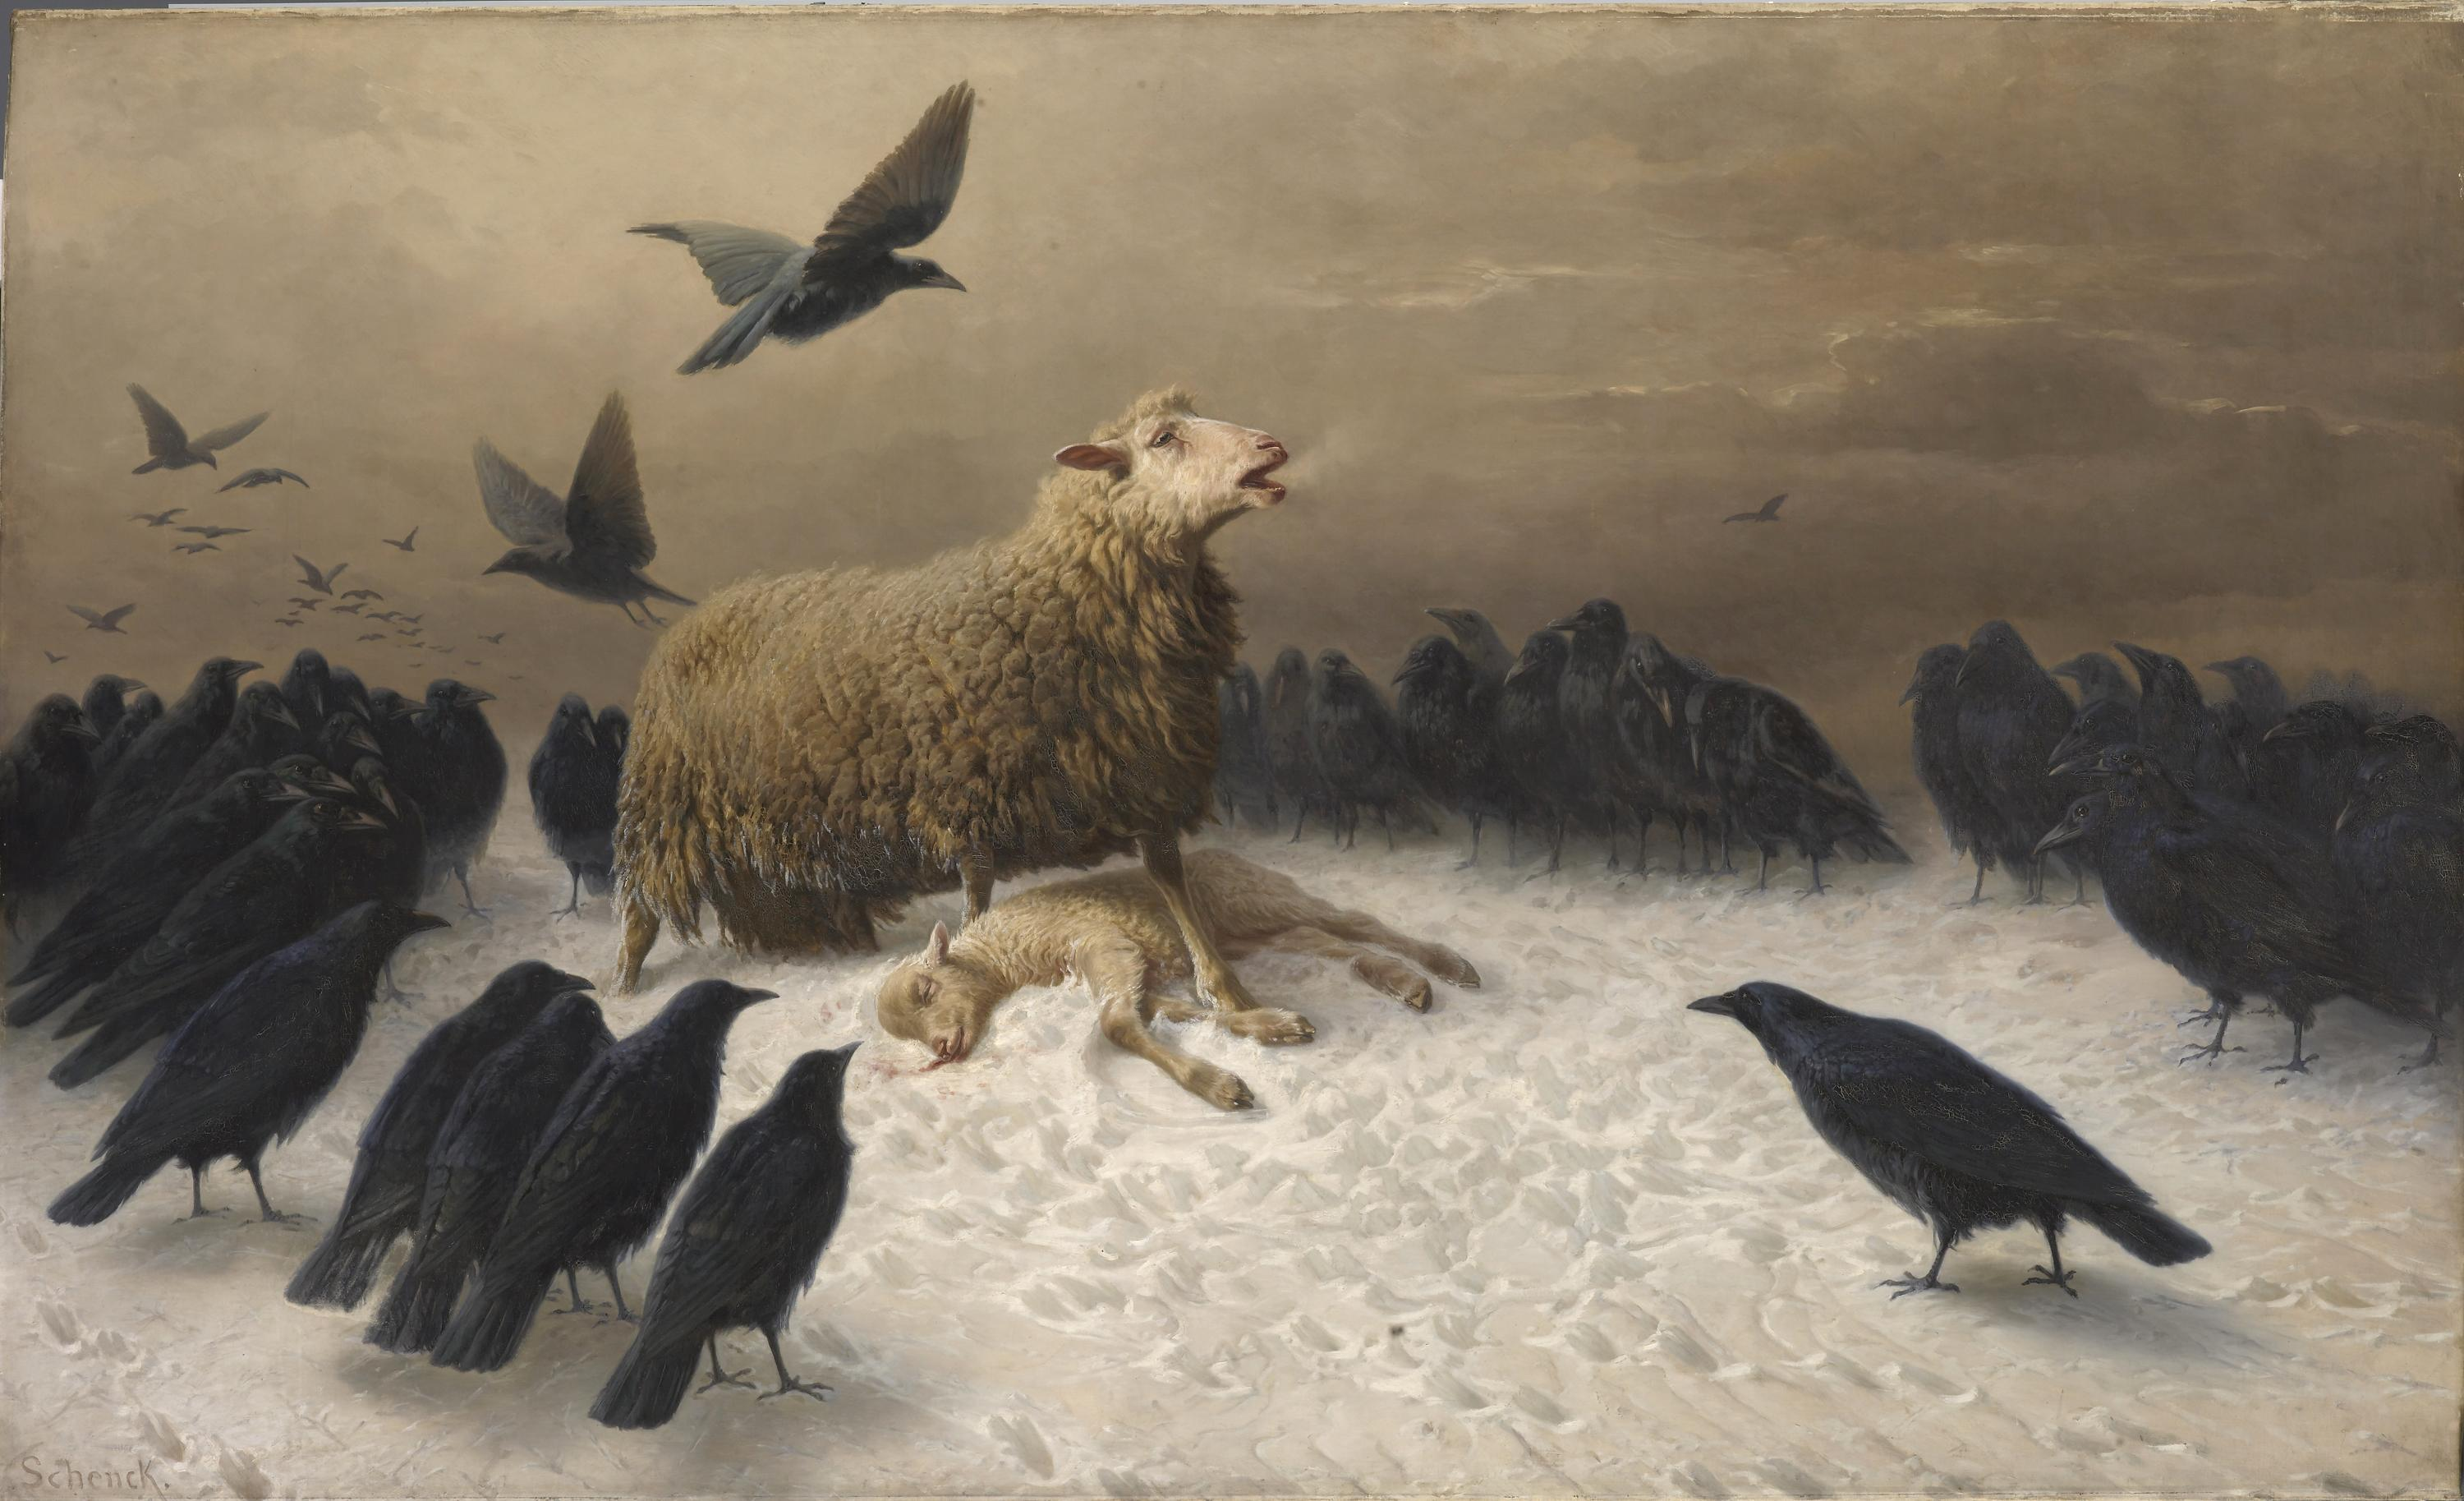 The story behind the NGV's 'sad sheep painting' and the mysterious artist who painted it